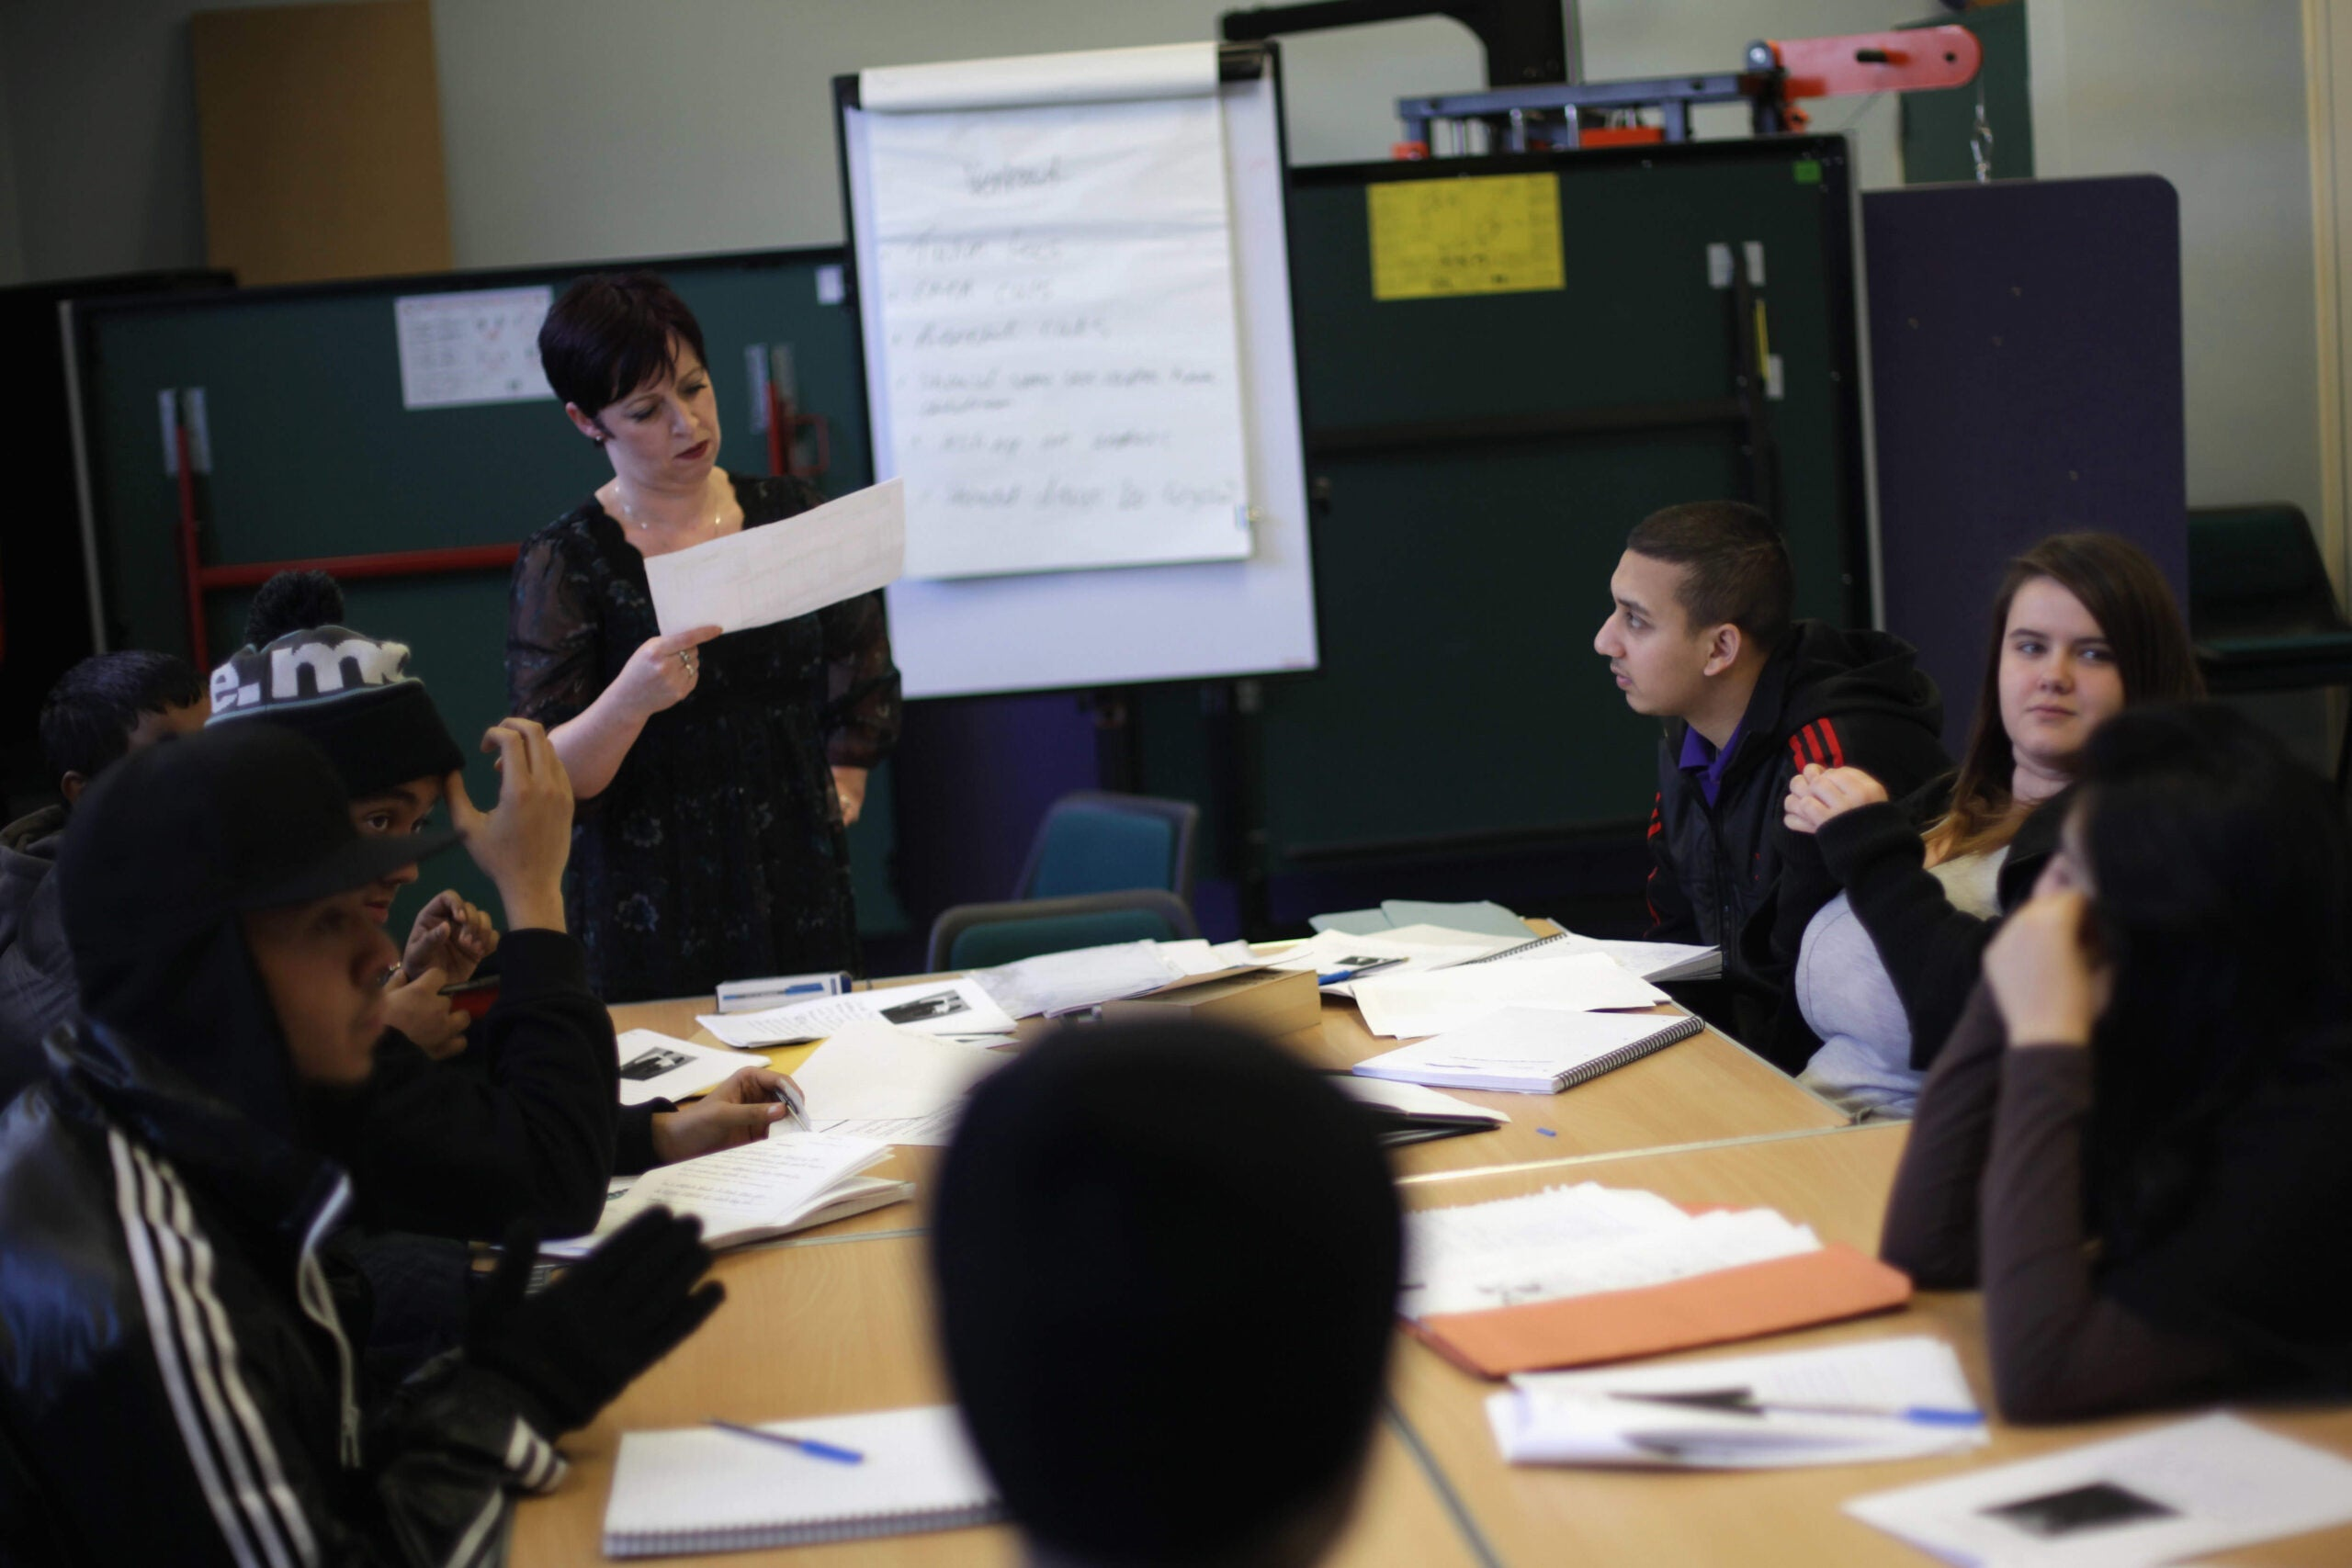 Young people need more help moving from education into work